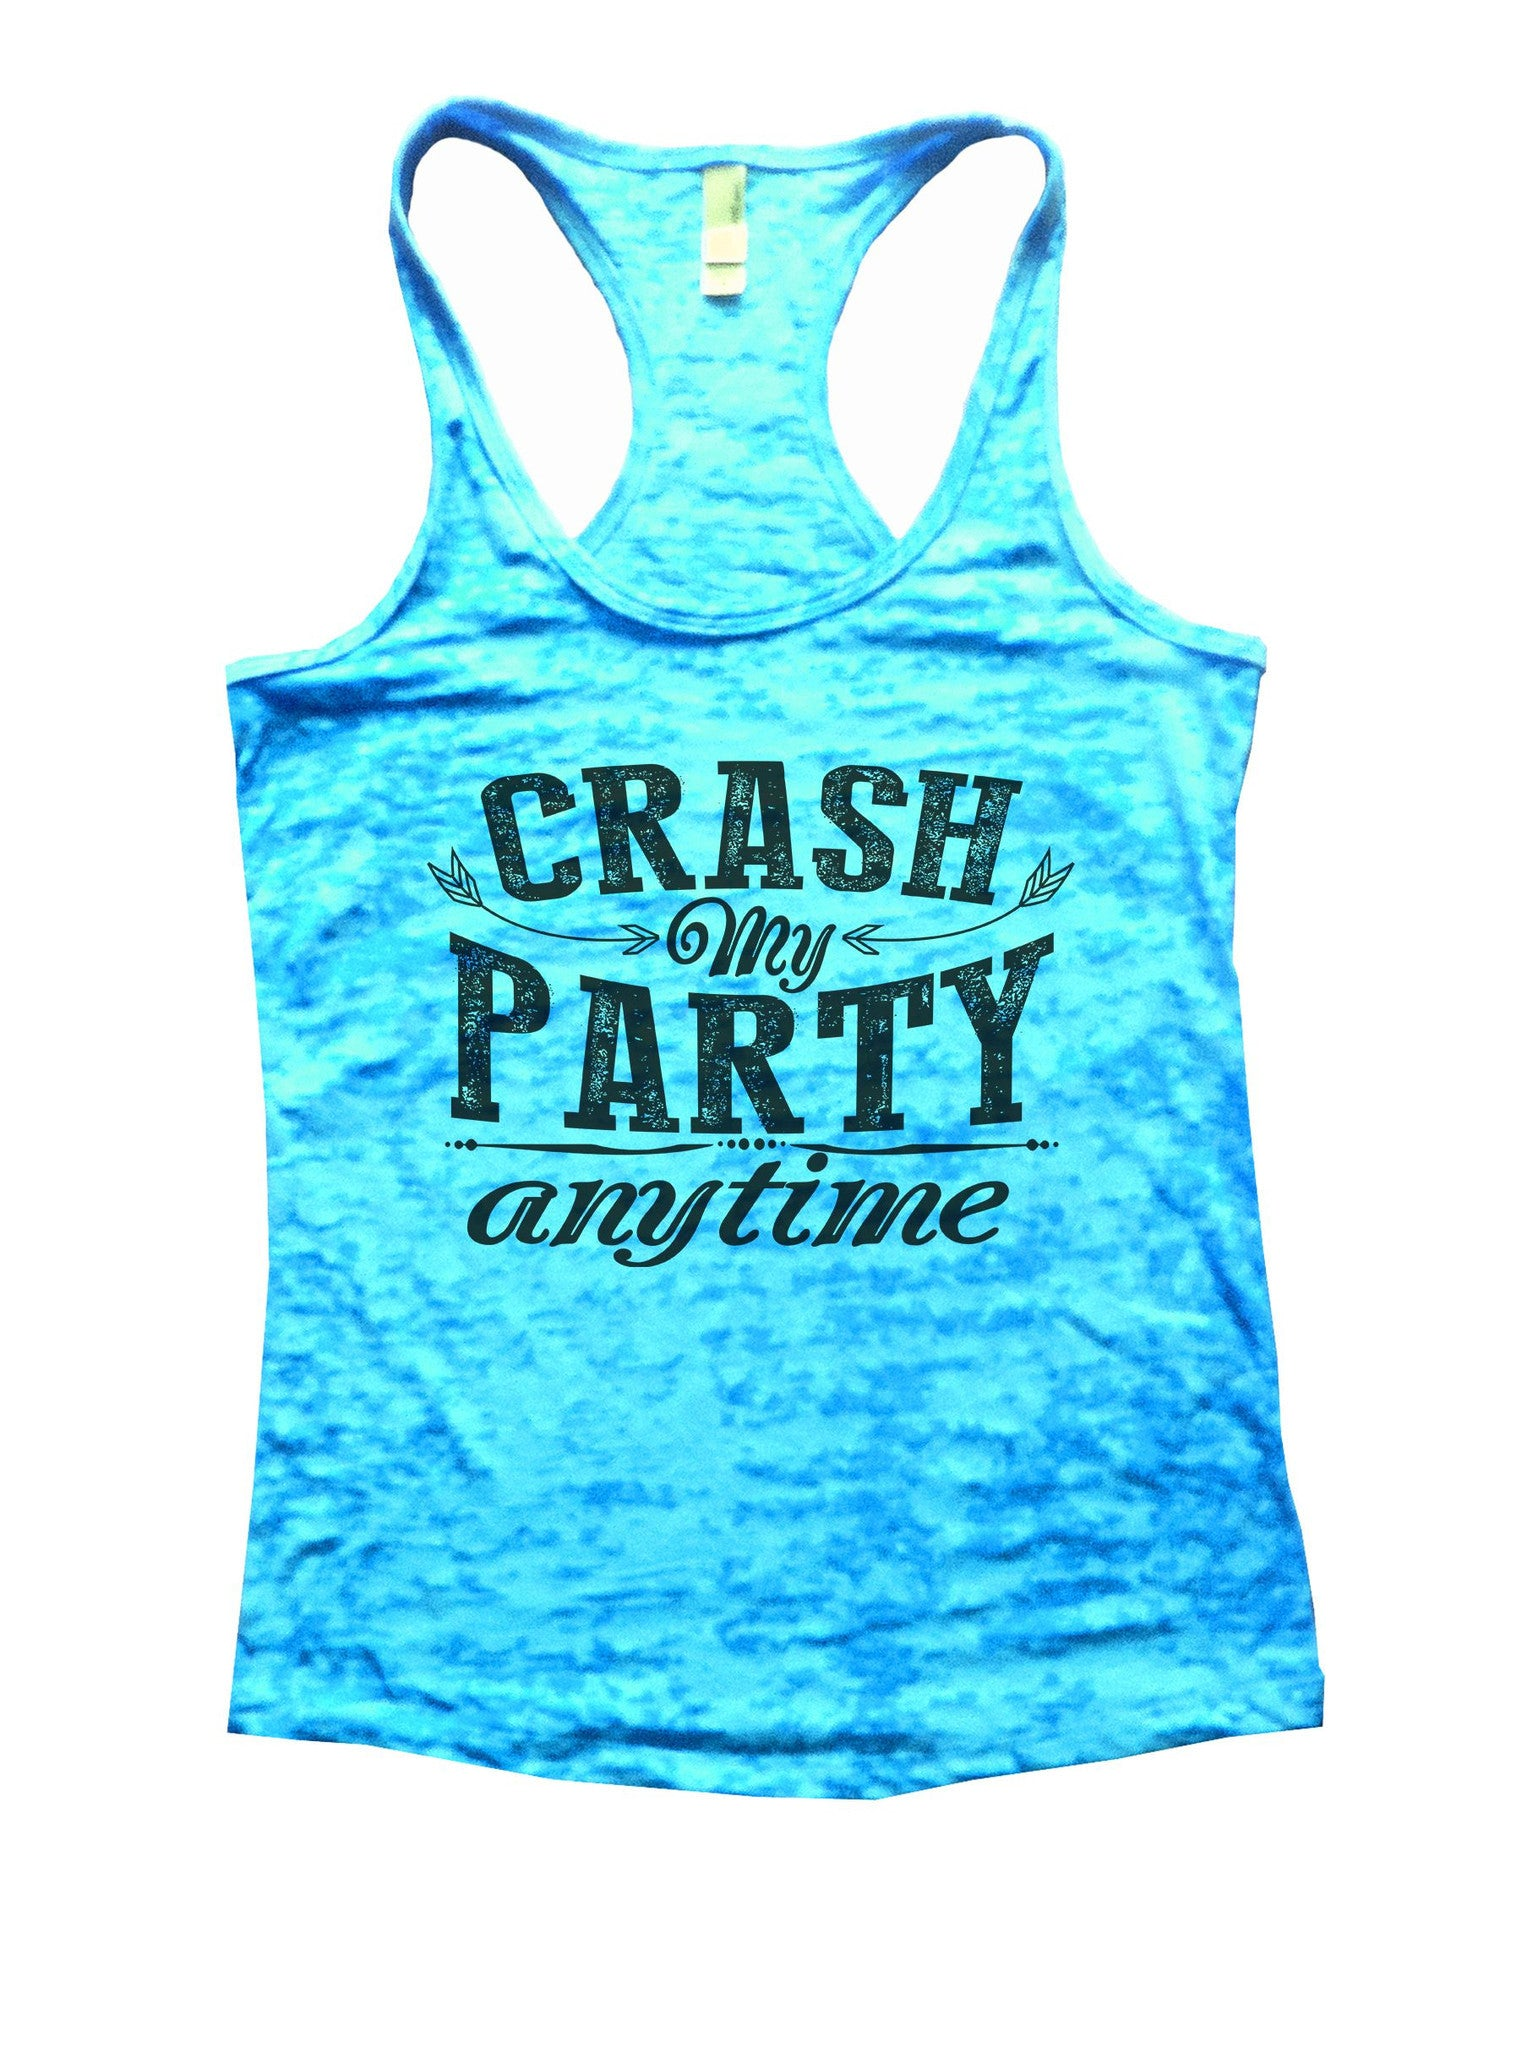 Crash My Party Anytime Burnout Tank Top By BurnoutTankTops.com - 980 - Funny Shirts Tank Tops Burnouts and Triblends  - 4